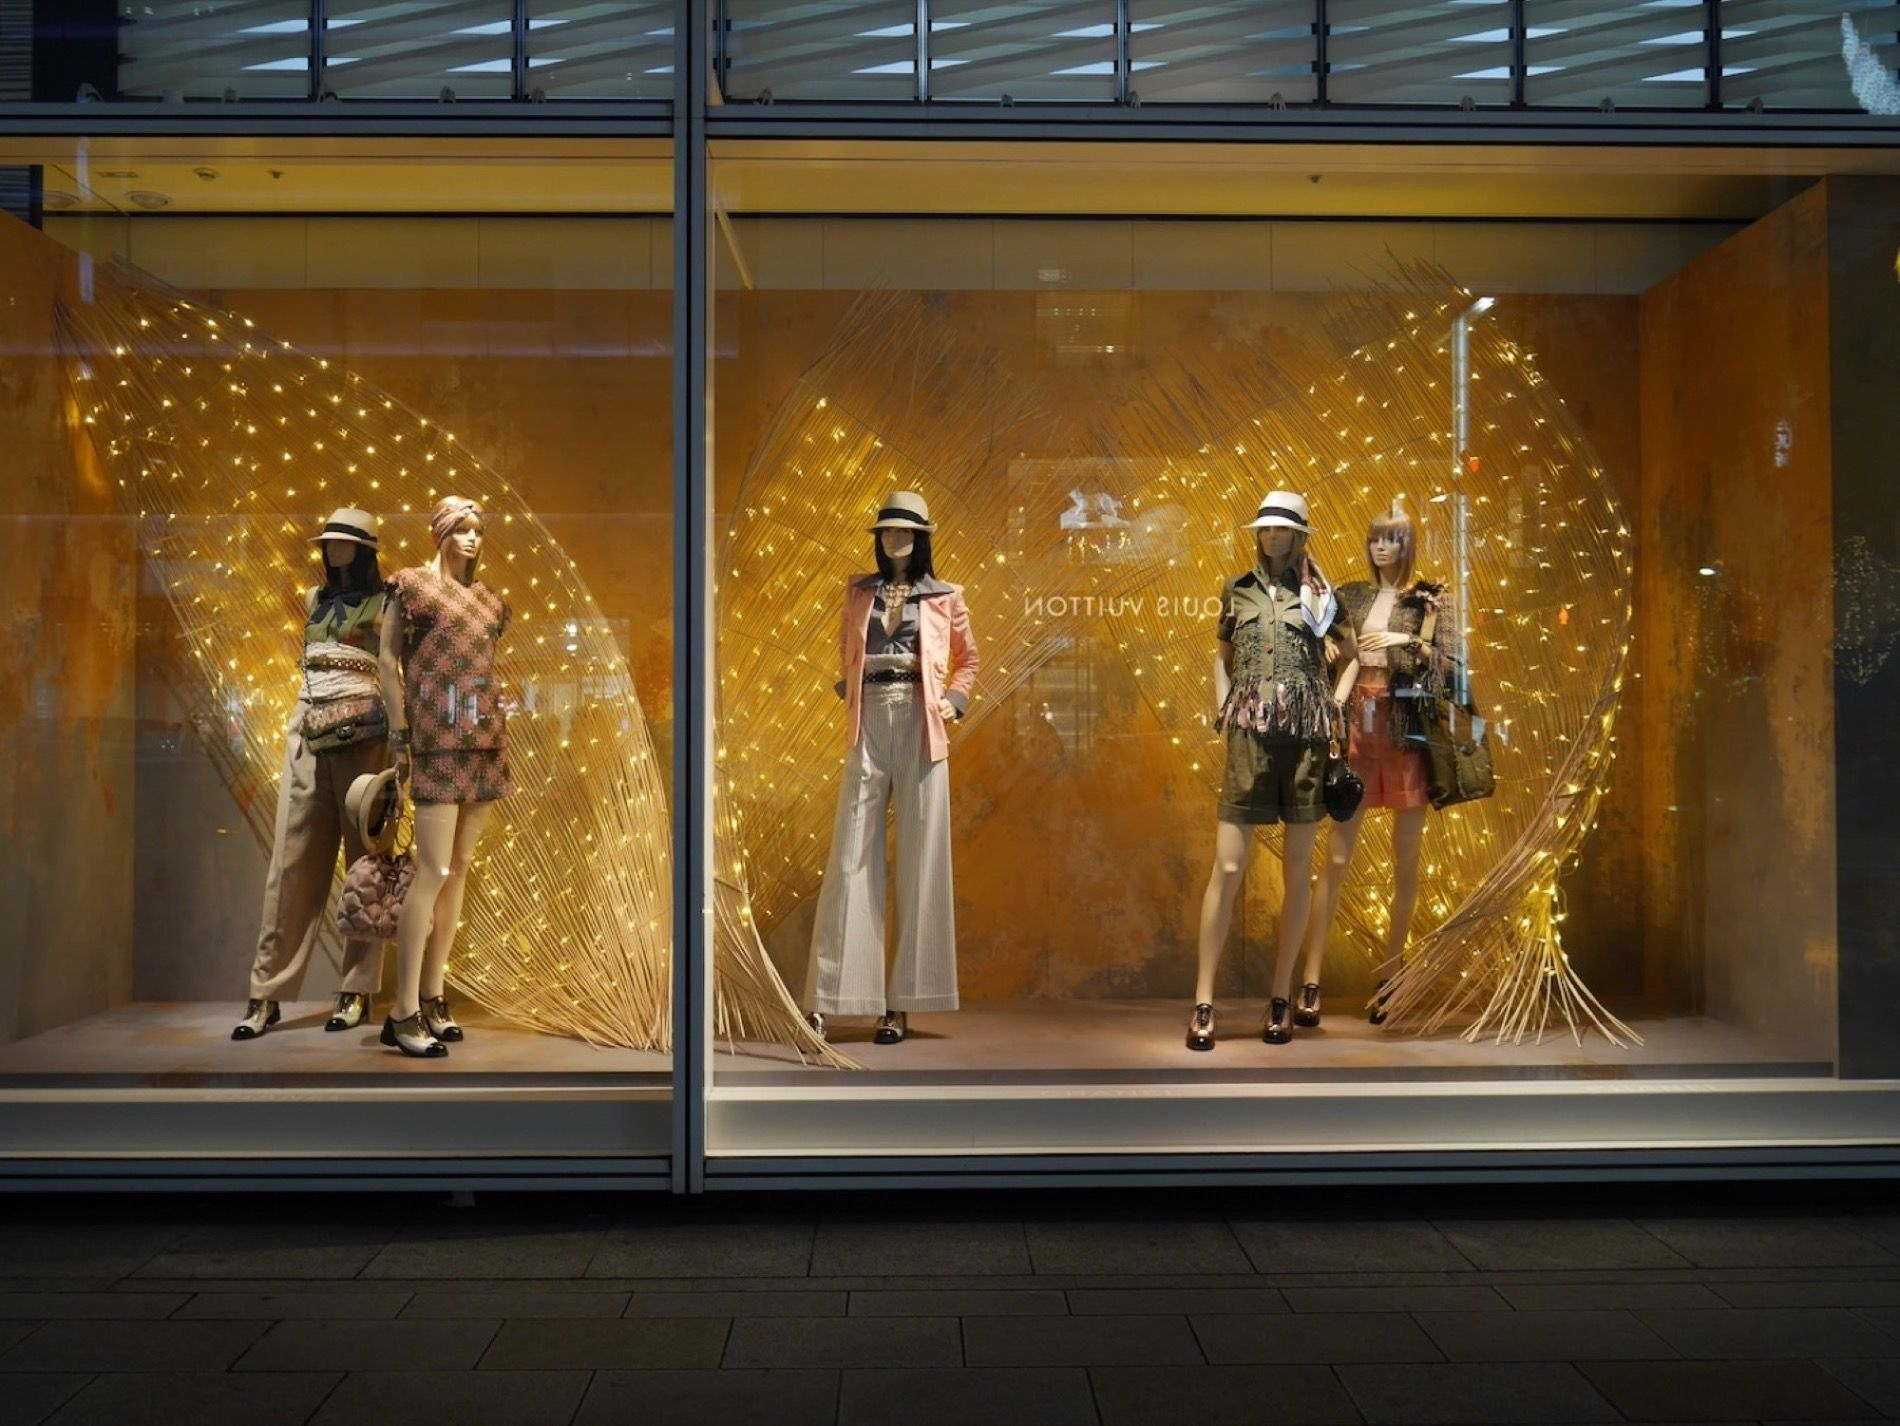 Display Windows Chanel, Tokyo, Japan, Changing Fashion Lives One Lightbulb